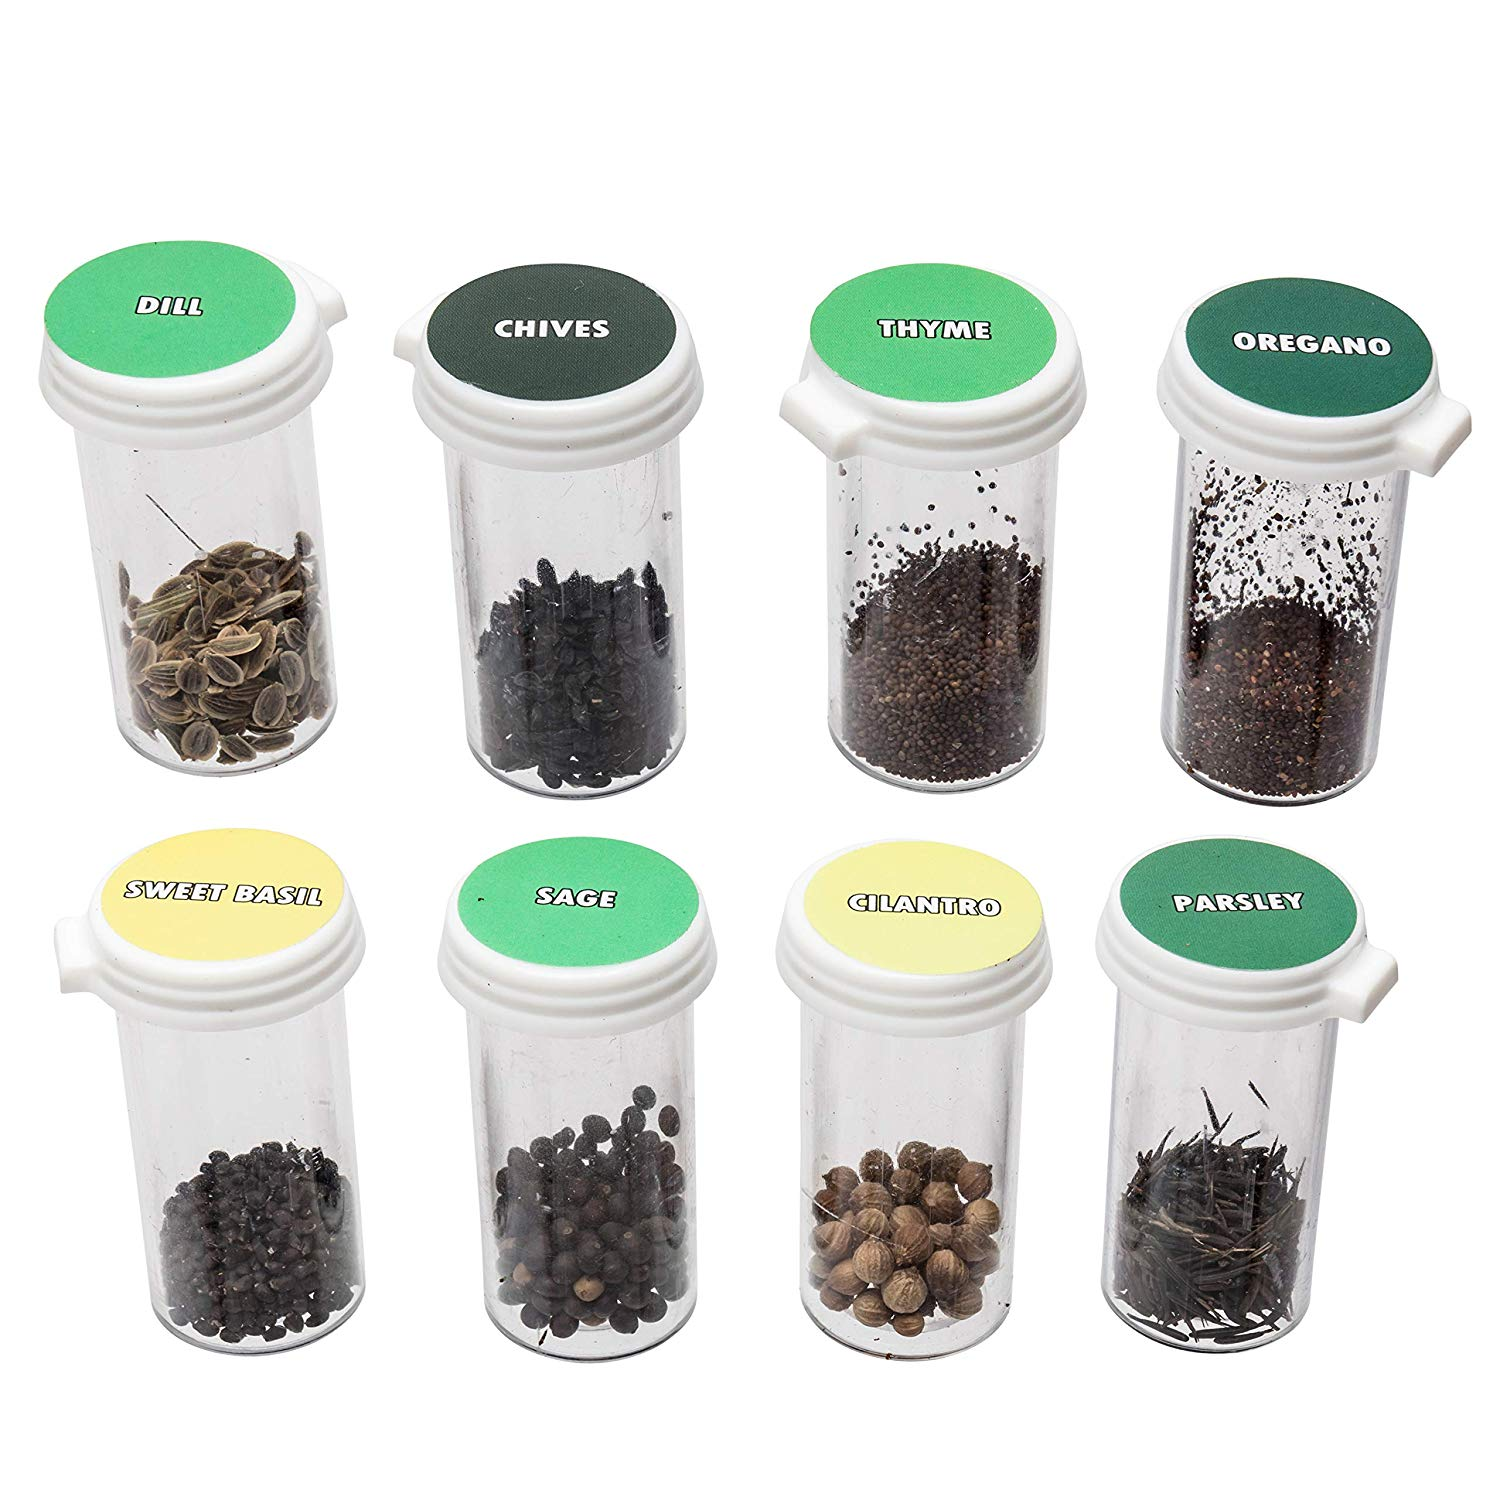 8 Premium Culinary Herb Garden Seed Kit | Grow Fresh Organic Herbs & Spices at Home | Stay Fresh Vials with More Seeds Than Traditional Seed Packets | Basil, Rosemary, Thyme & More